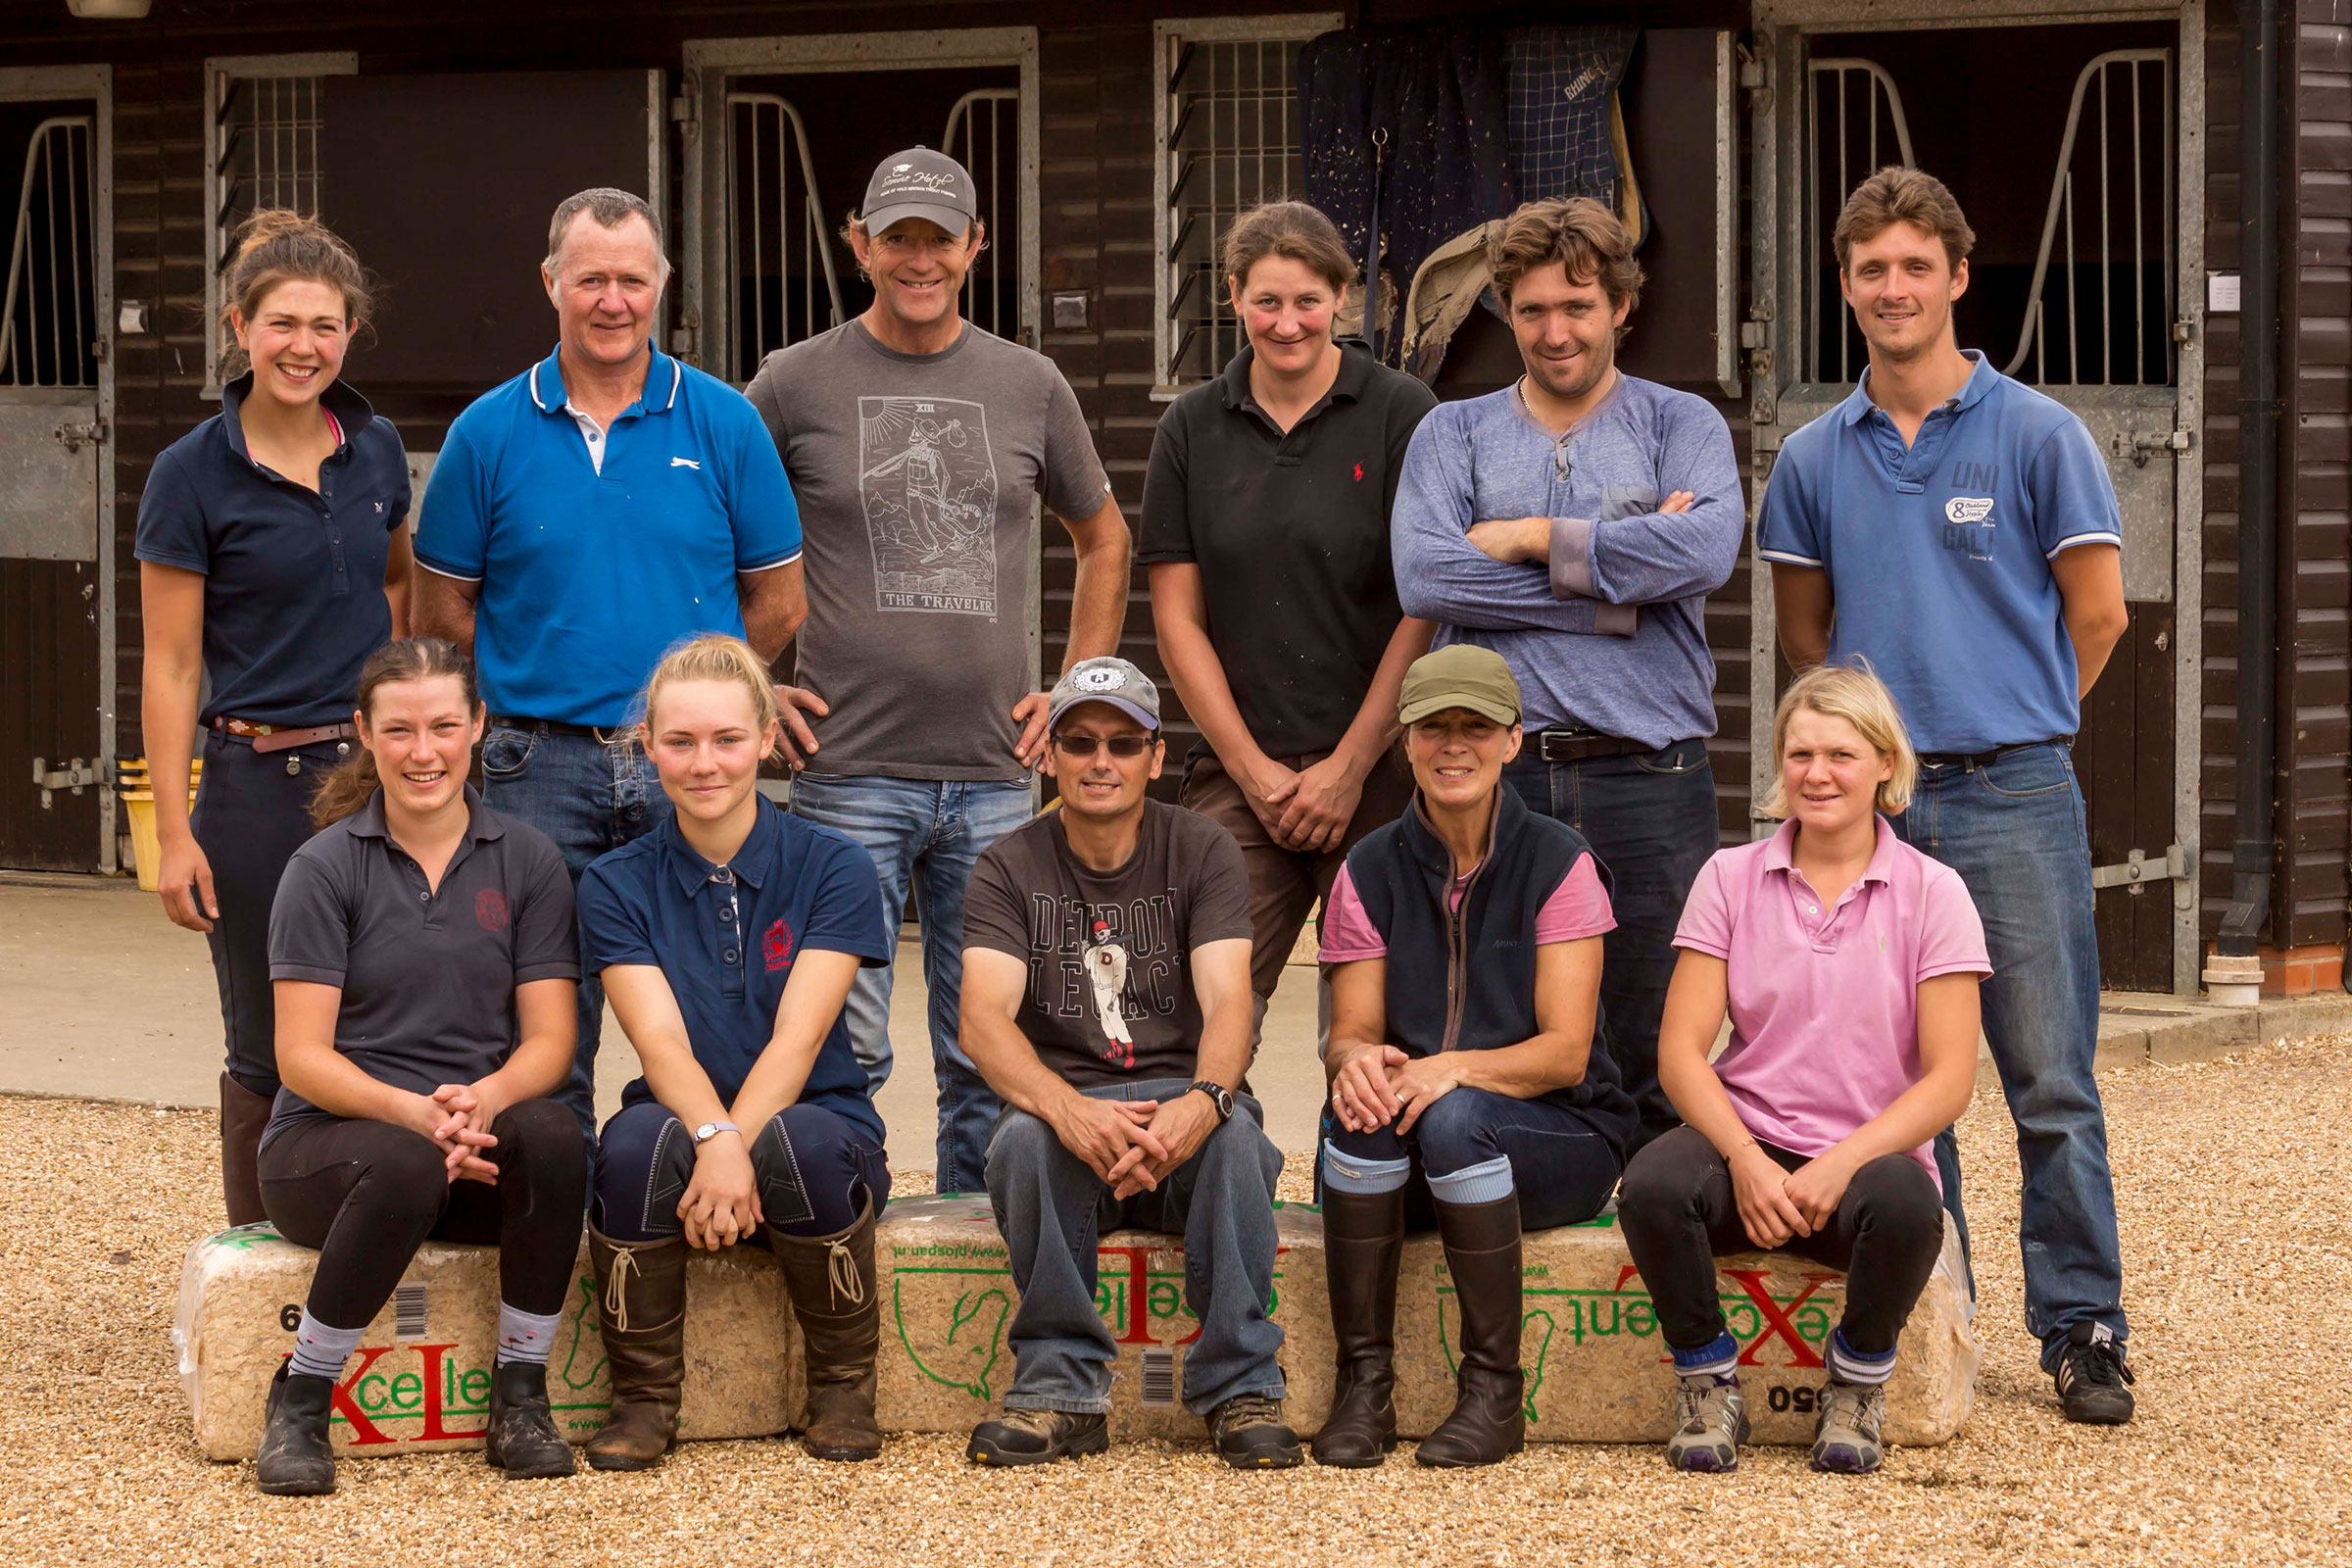 The Penny Farm team